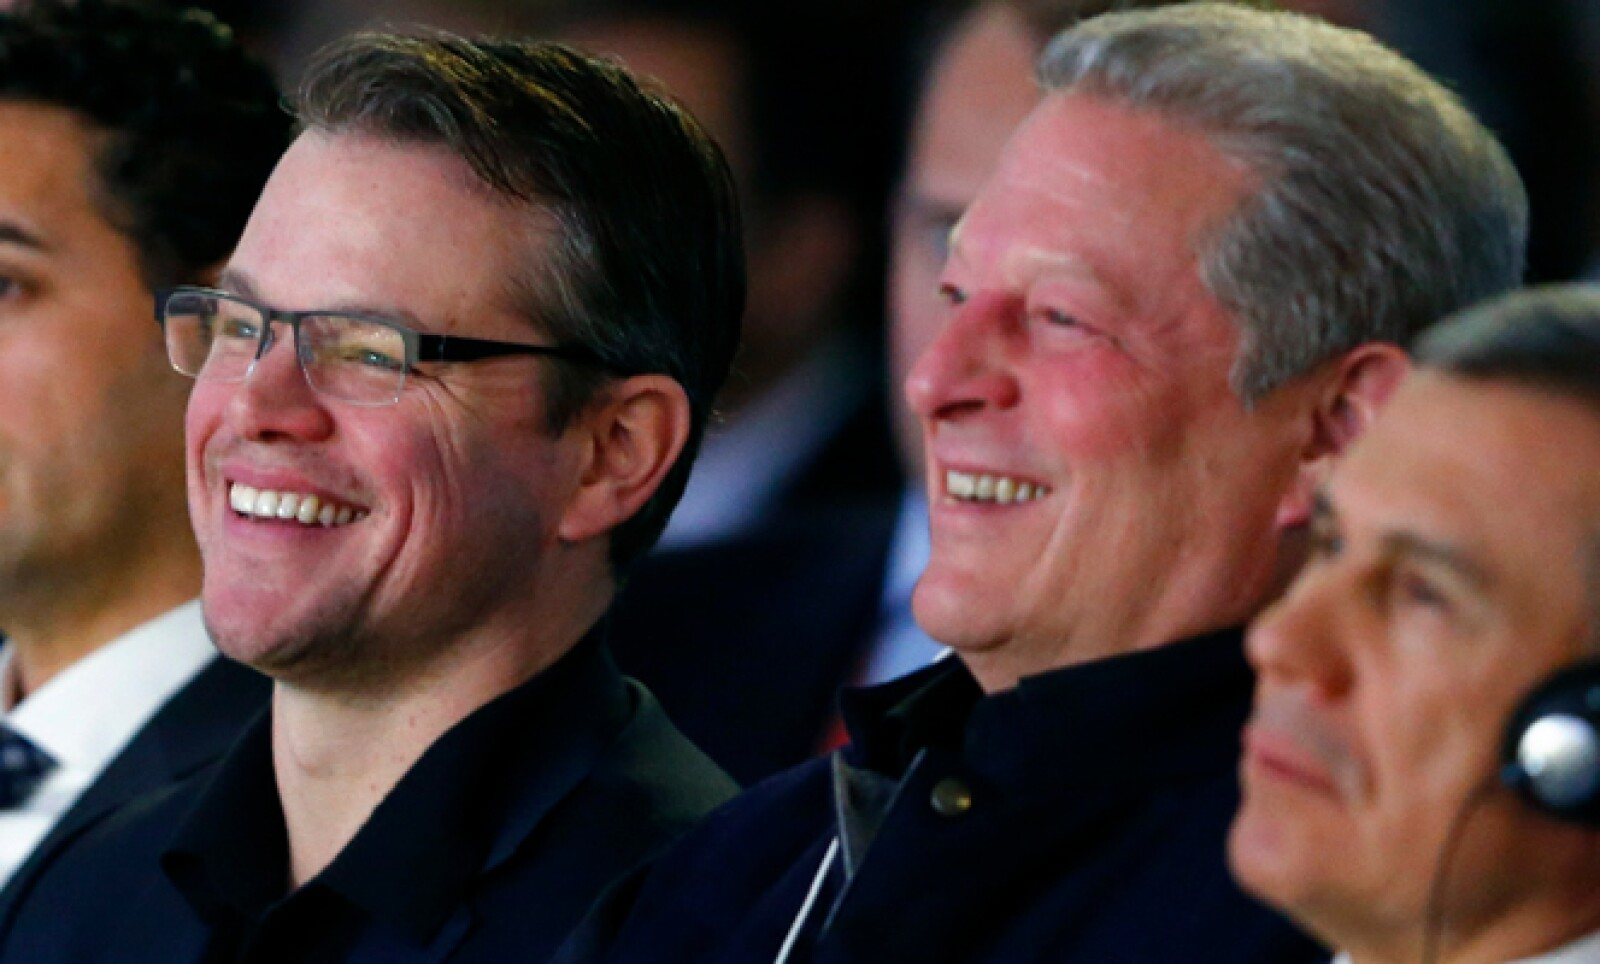 Entre los invitados a la Ceremonia Cristal se encontraban el exvicepresidente de EU Al Gore y el actor Matt Damon.